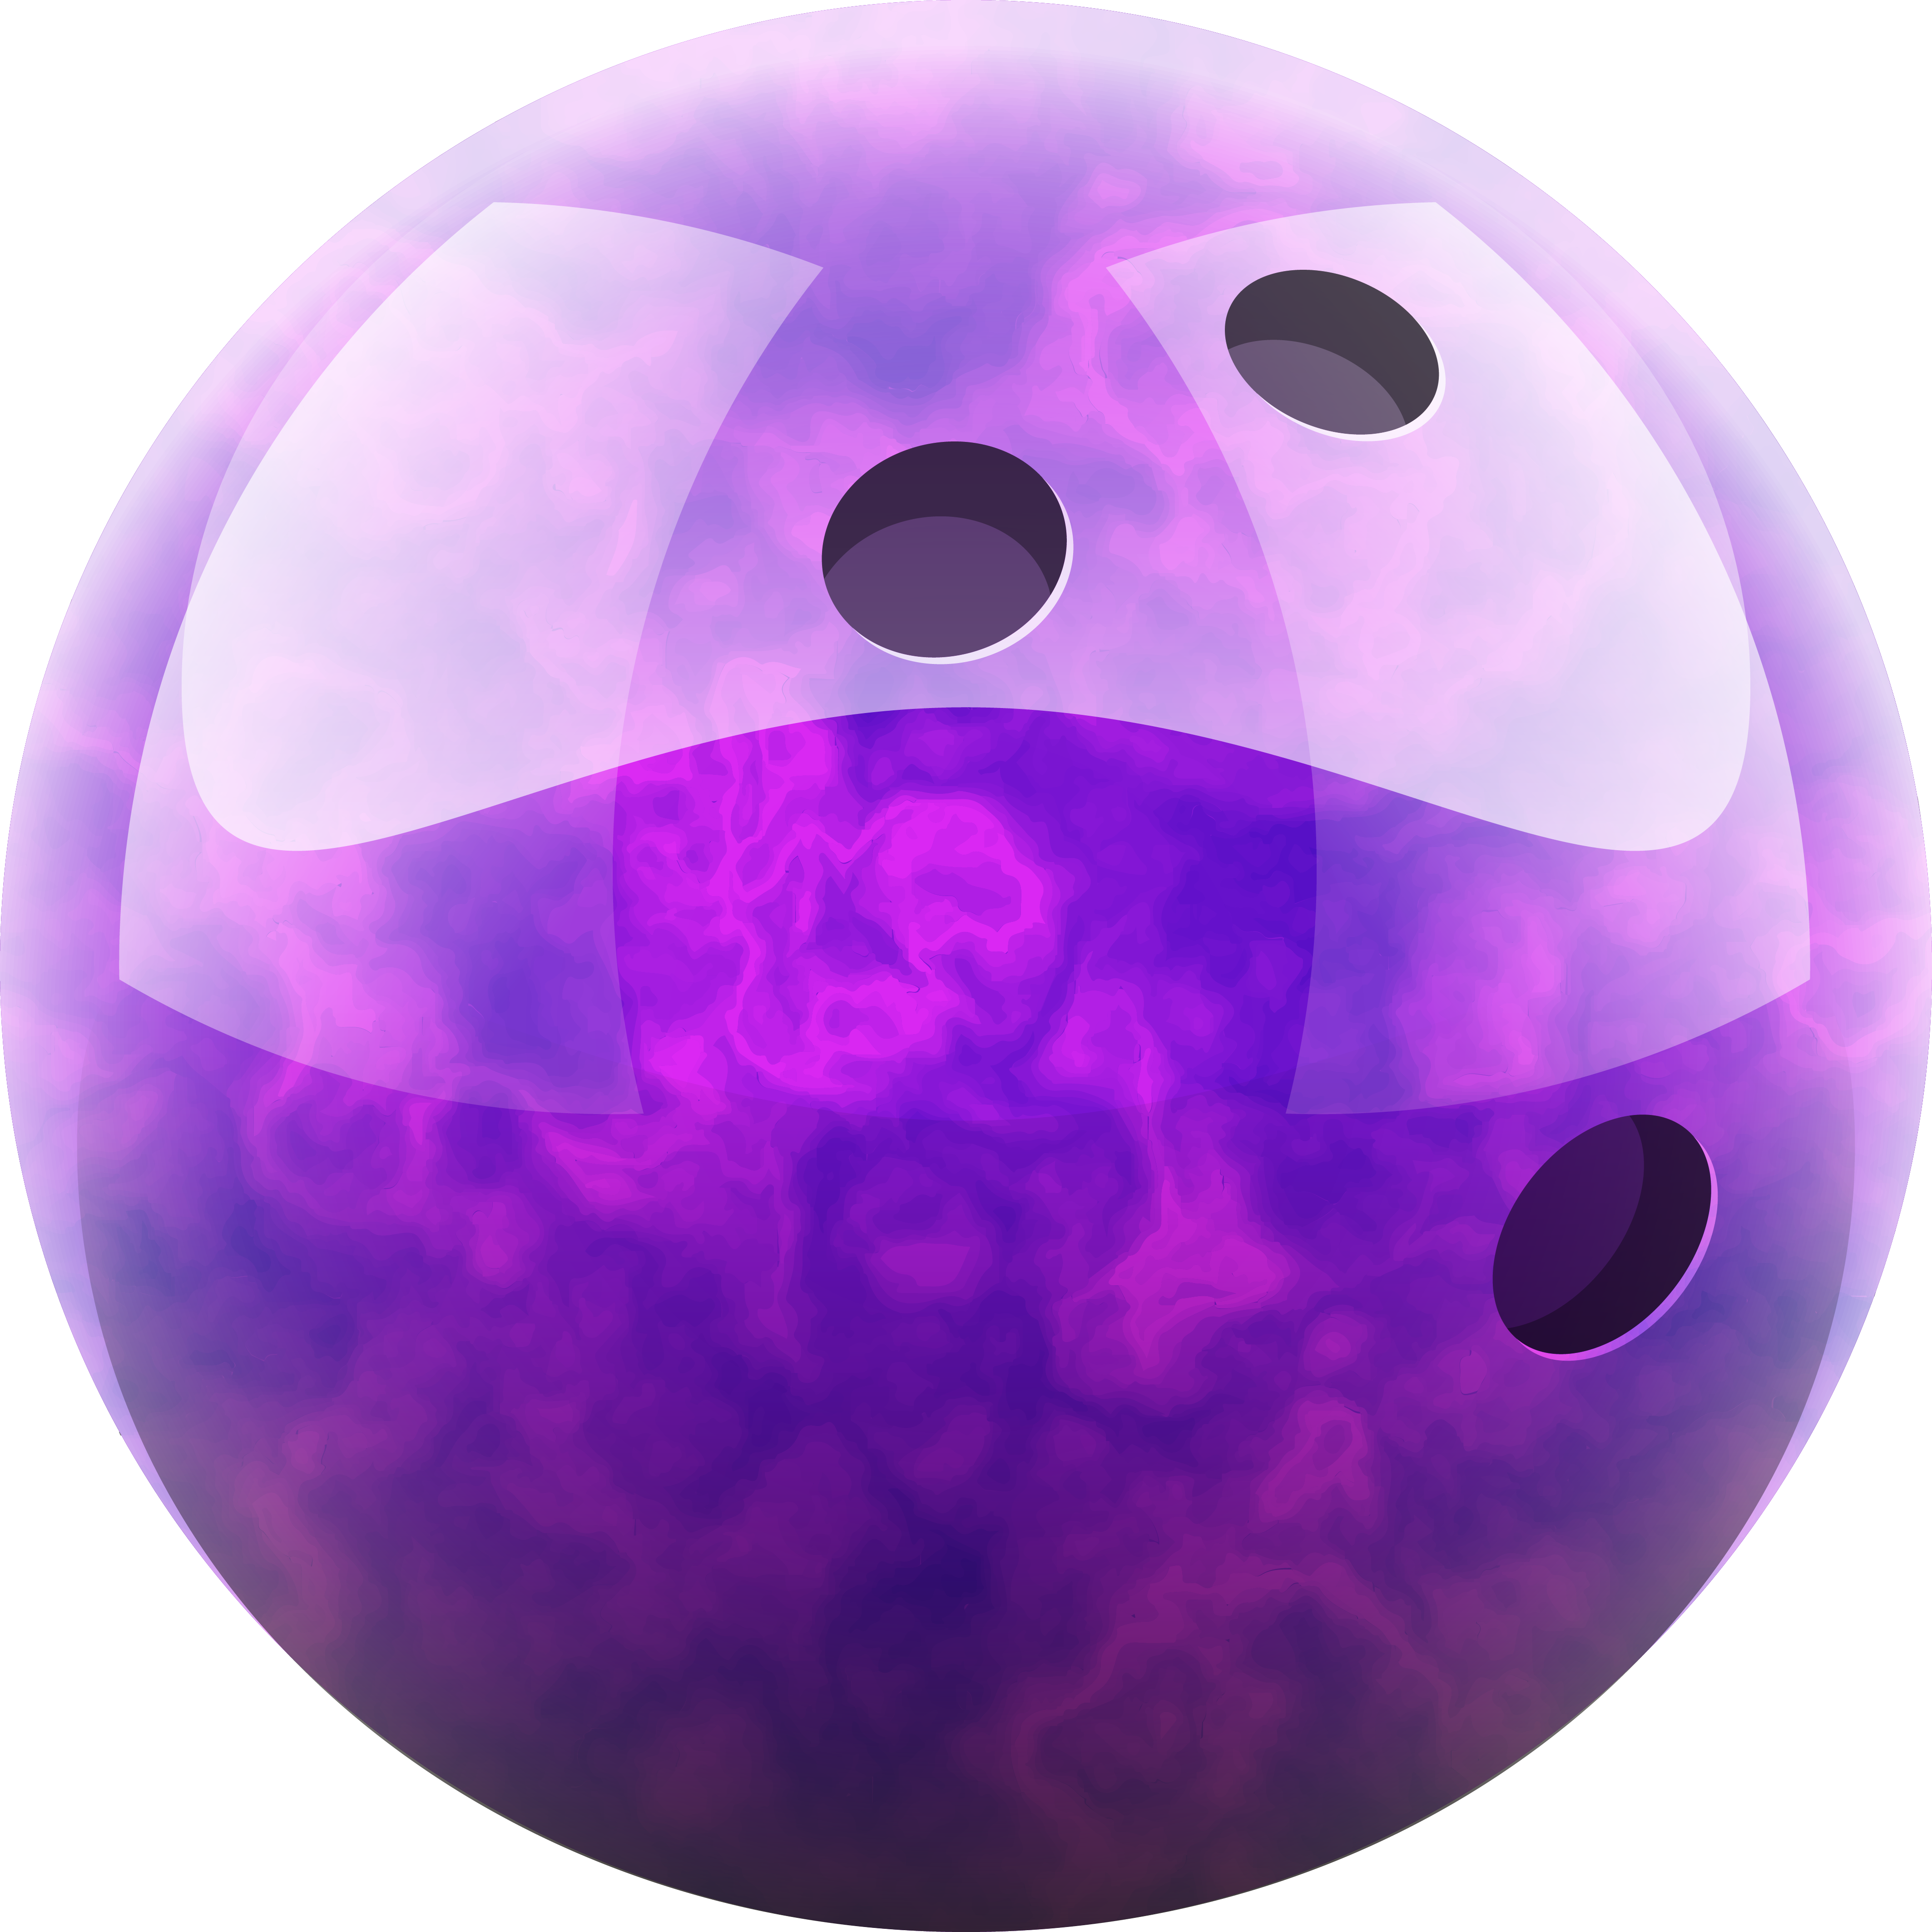 clipart library download Sphere clipart cone. Purple ball free on